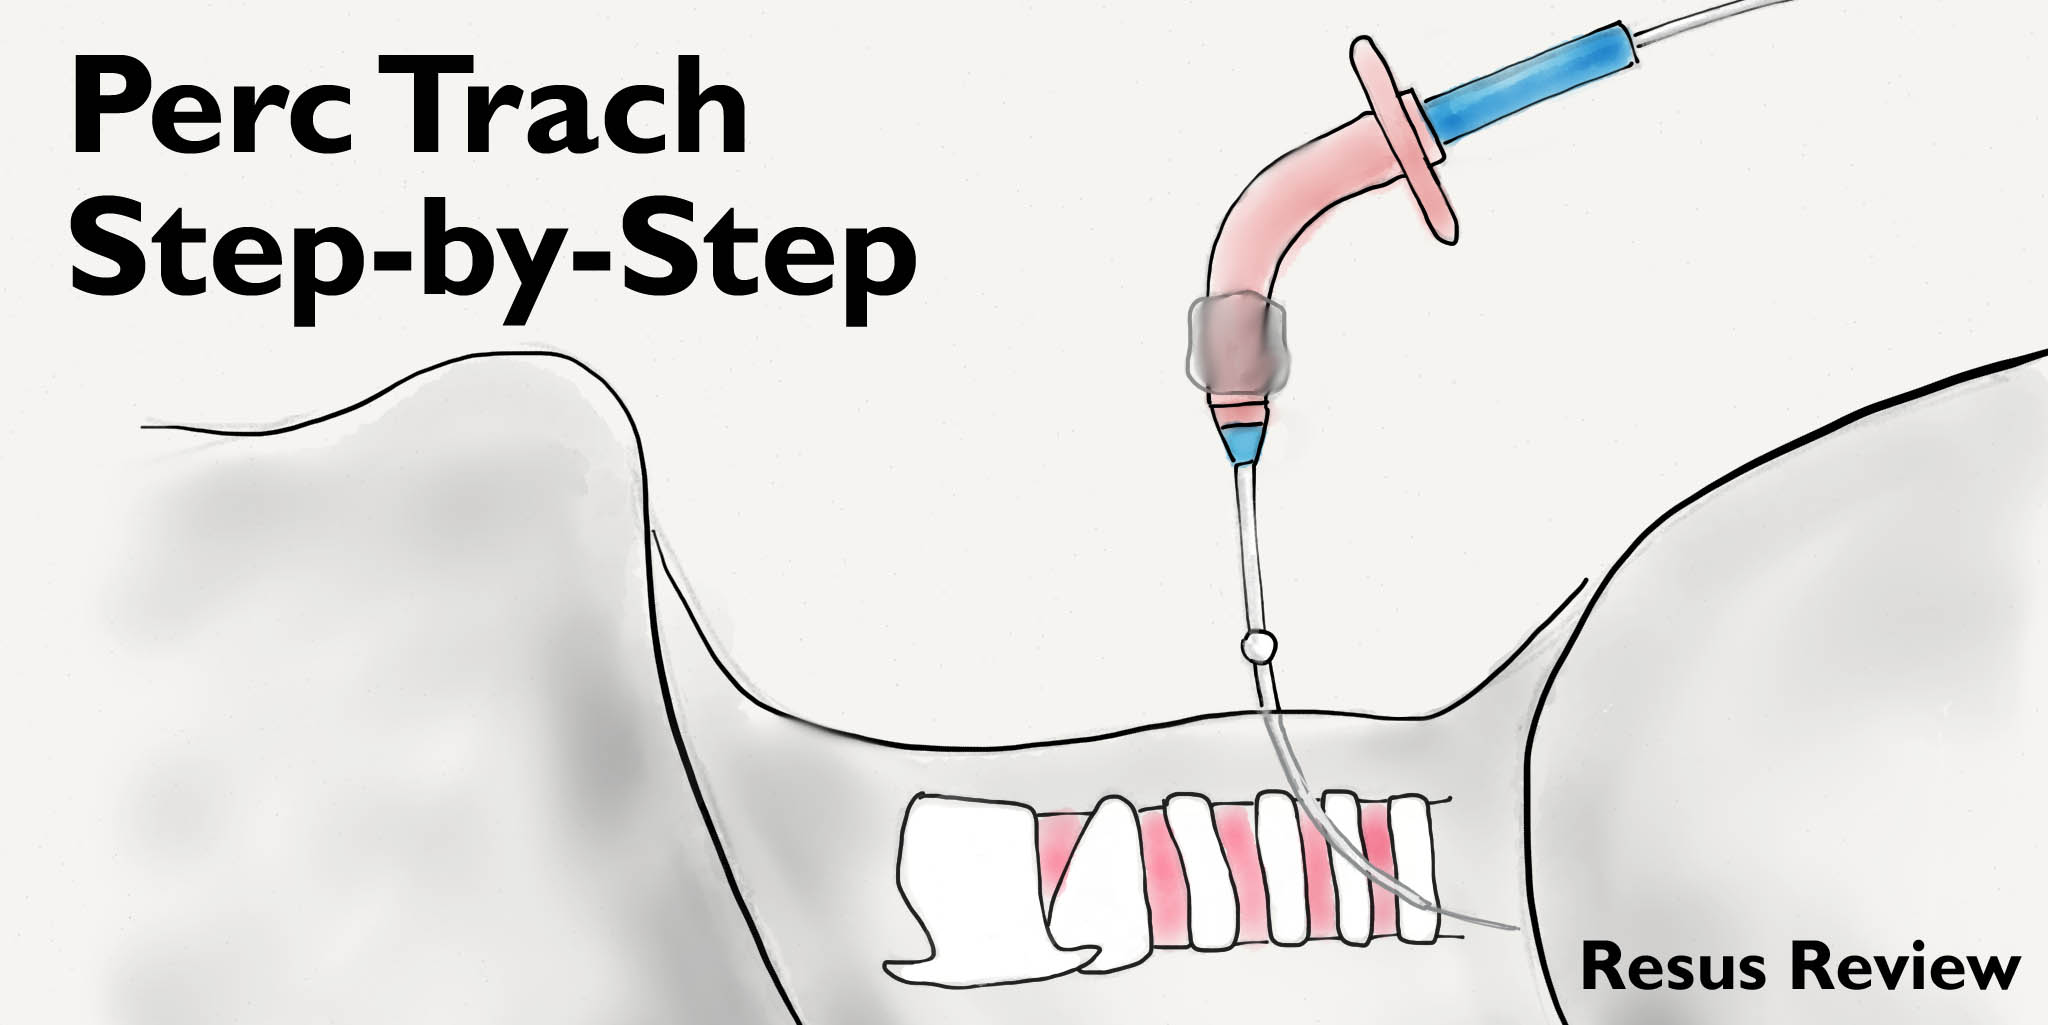 Perc Trach Step-by-Step Tutorial – Resus Review